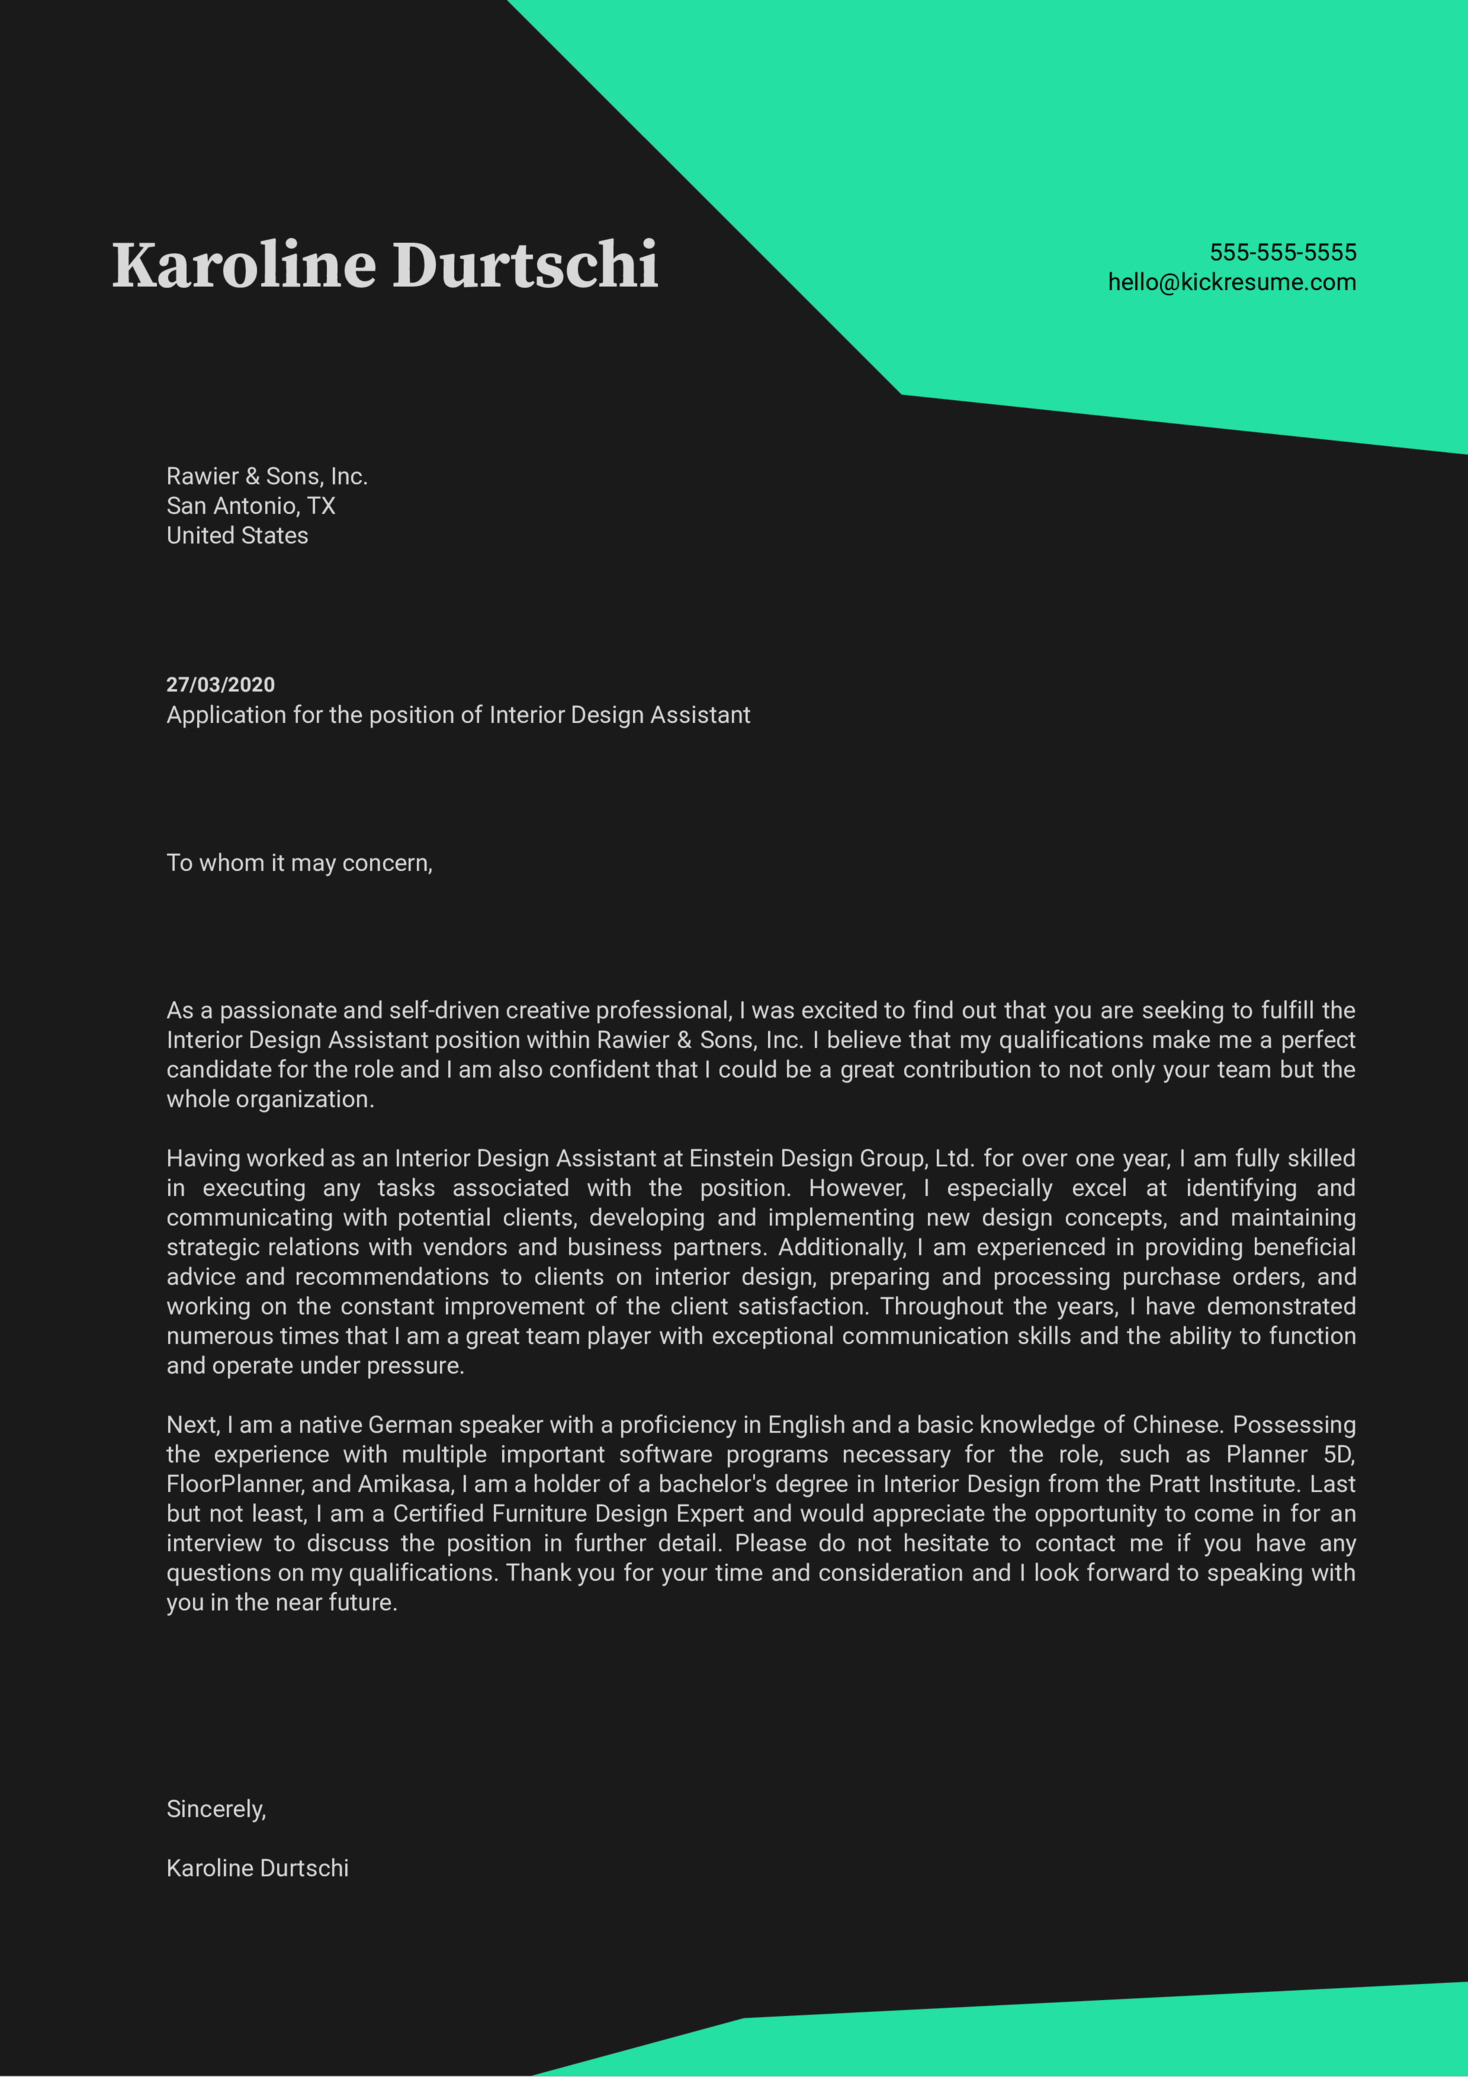 Interior Design Assistant Cover Letter Sample Kickresume